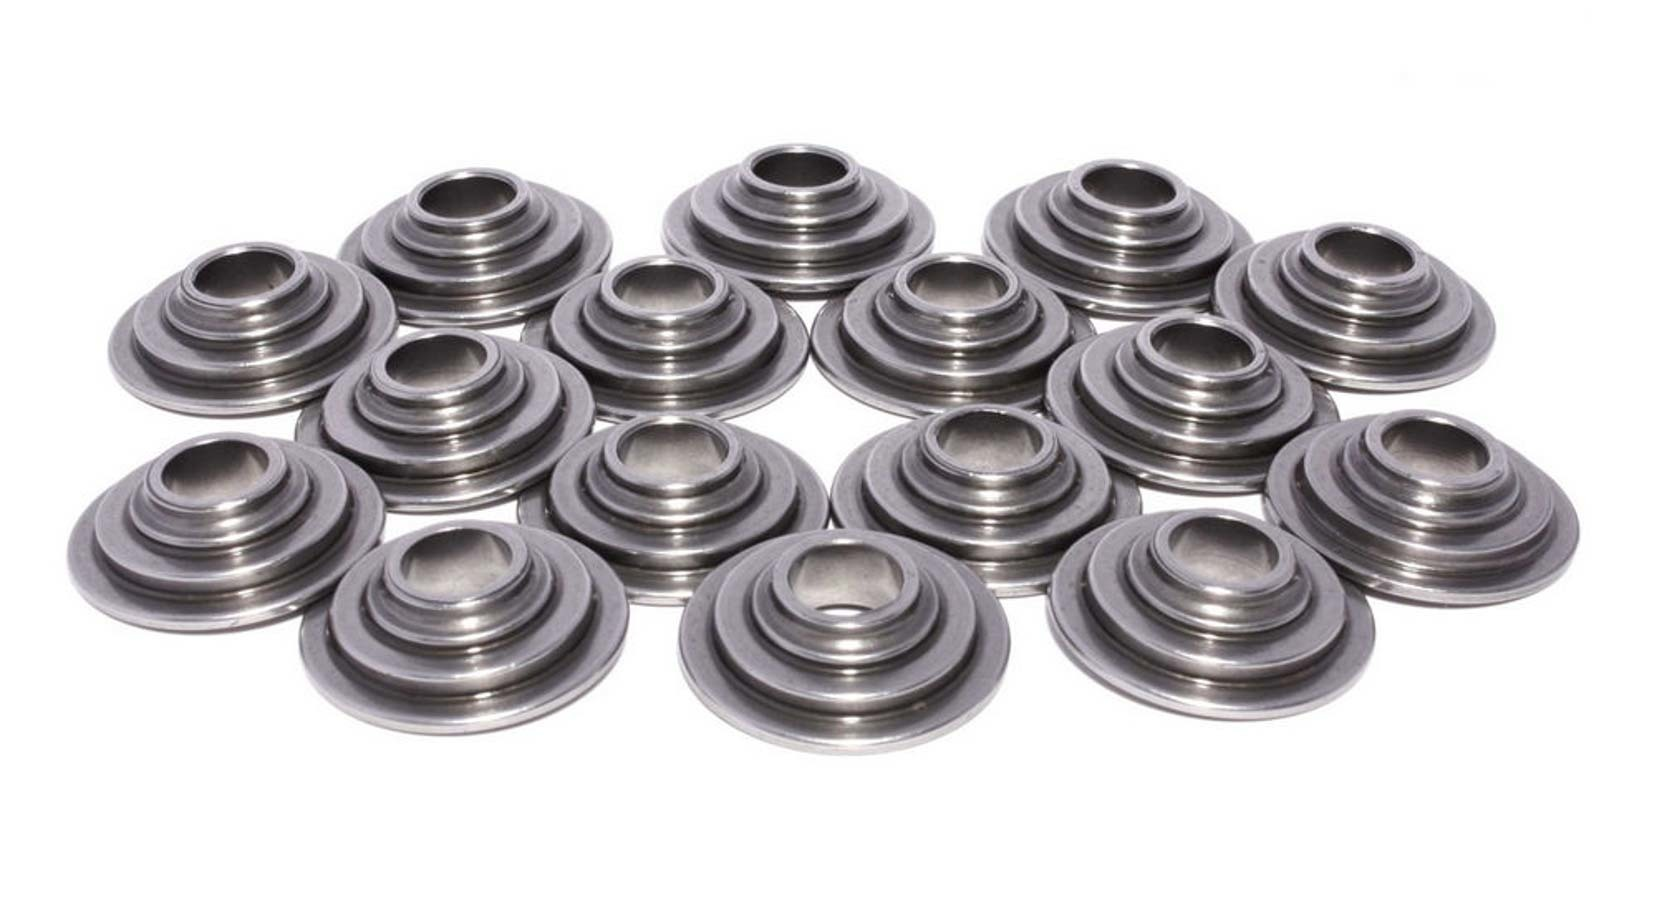 Comp Cams 1717-16 Valve Spring Retainer, 7 Degree, 0.945 / 0.675 in OD Steps, Dual Spring, Steel, Set of 16